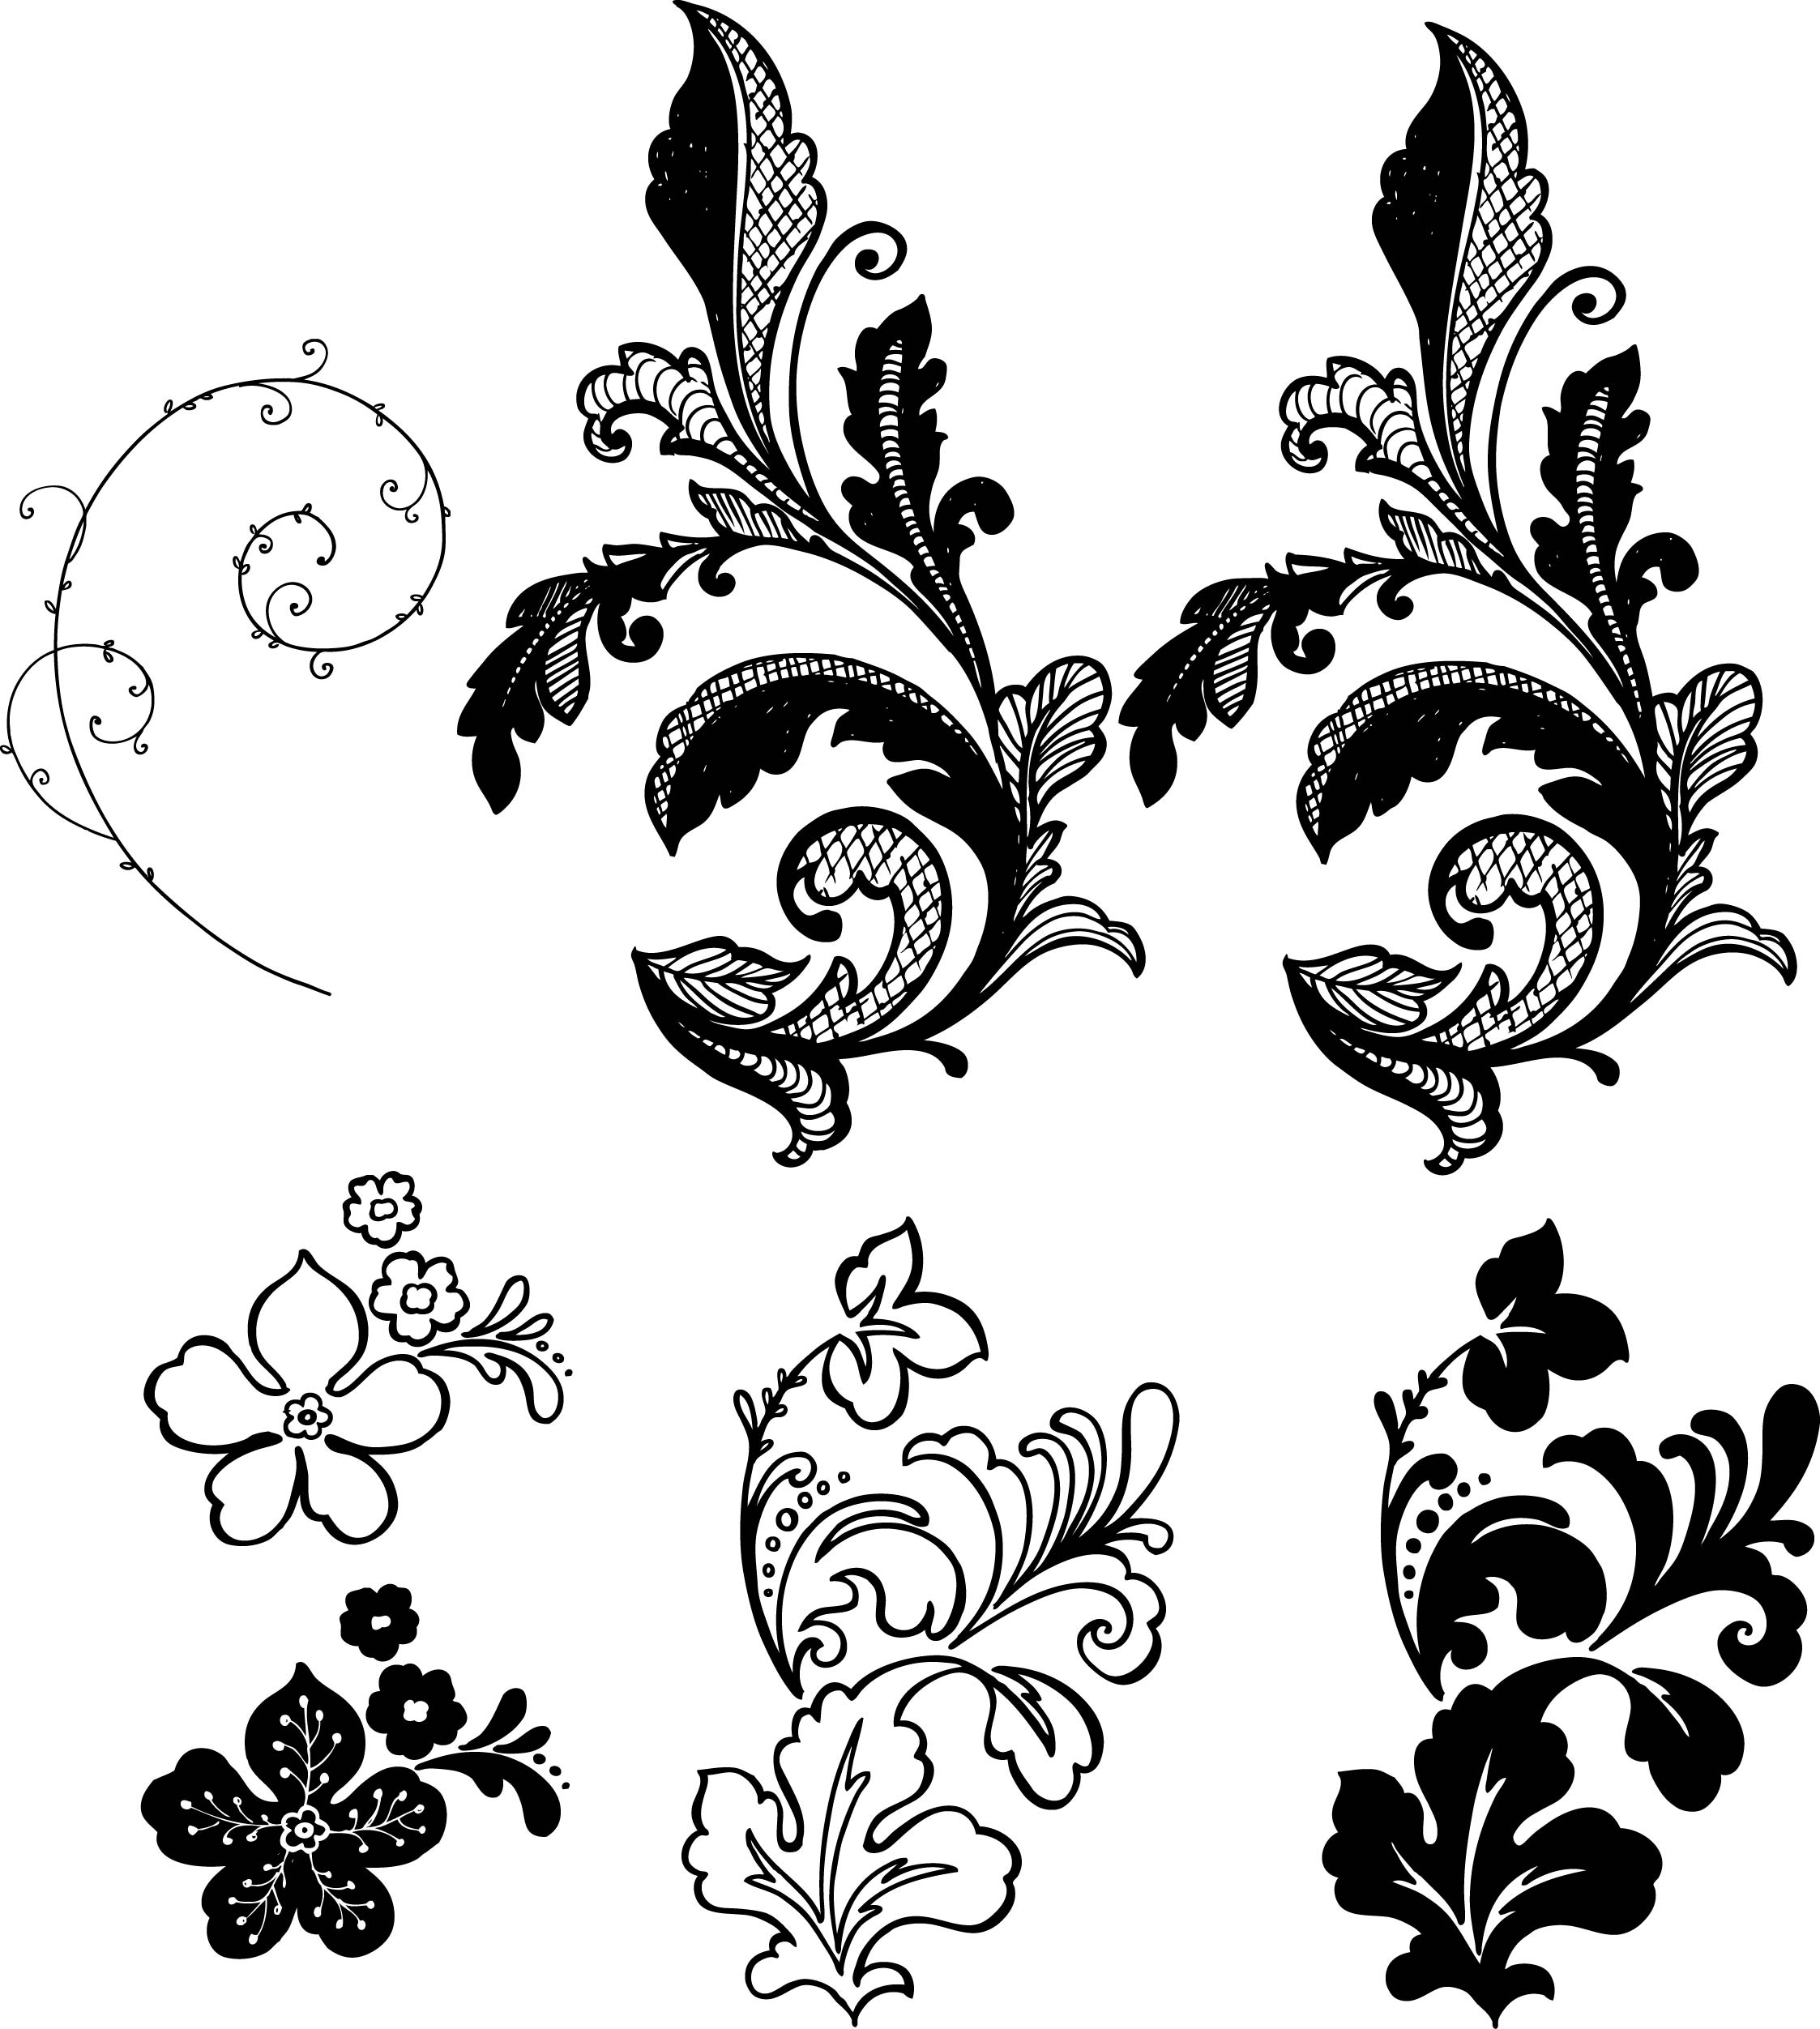 Floral motif clipart clip art black and white stock Free Flower Vector, Download Free Clip Art, Free Clip Art on Clipart ... clip art black and white stock